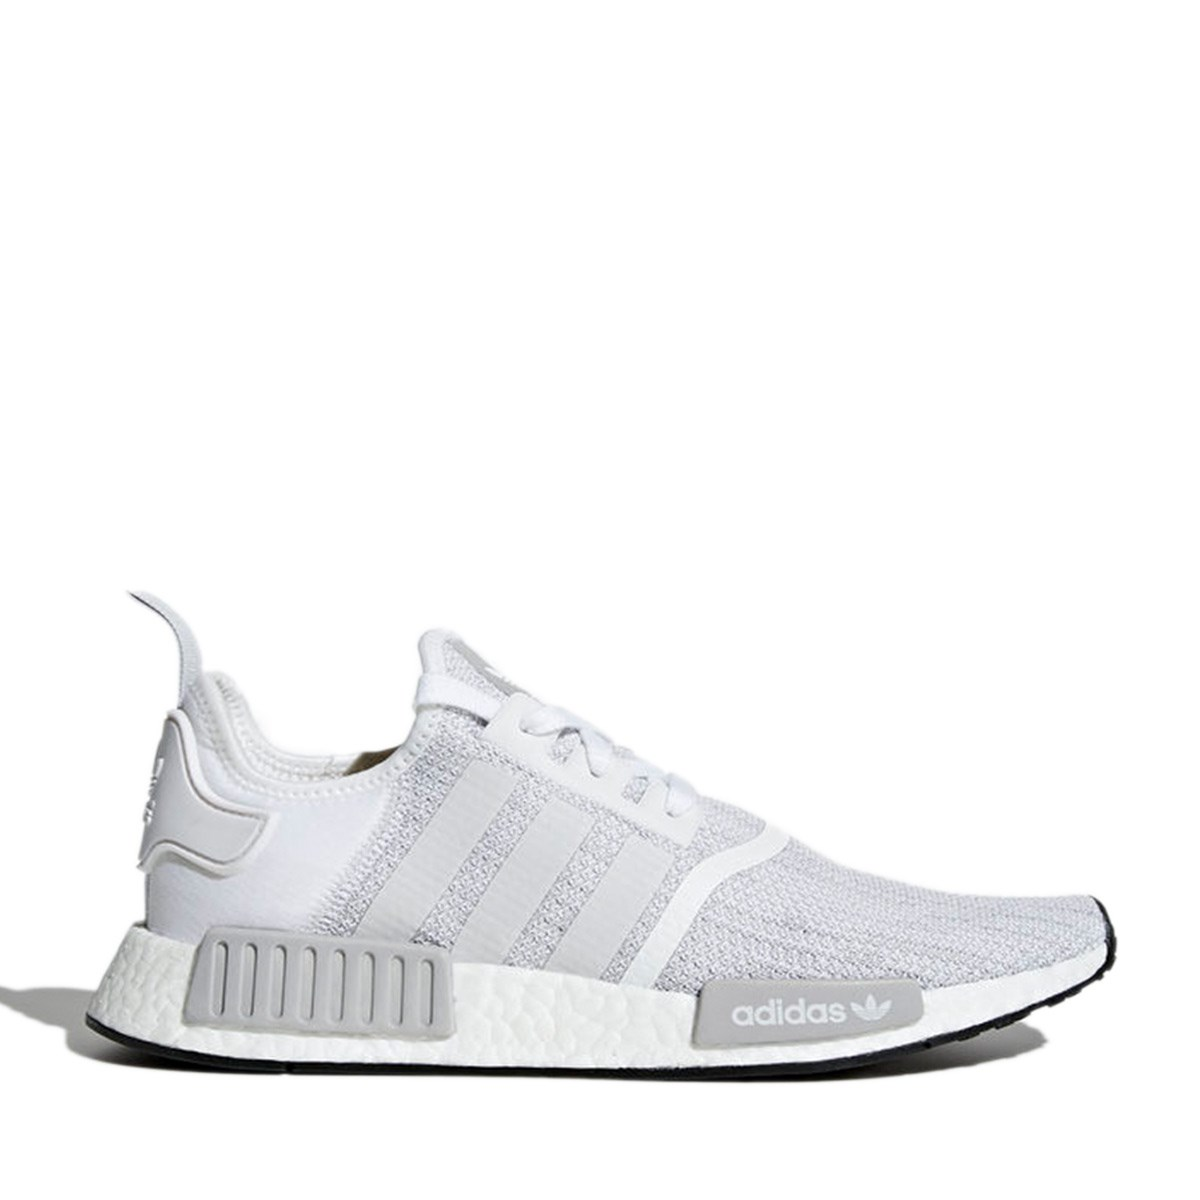 meet 66c8d 9c63d Men's NMD R1 Grey Sneaker